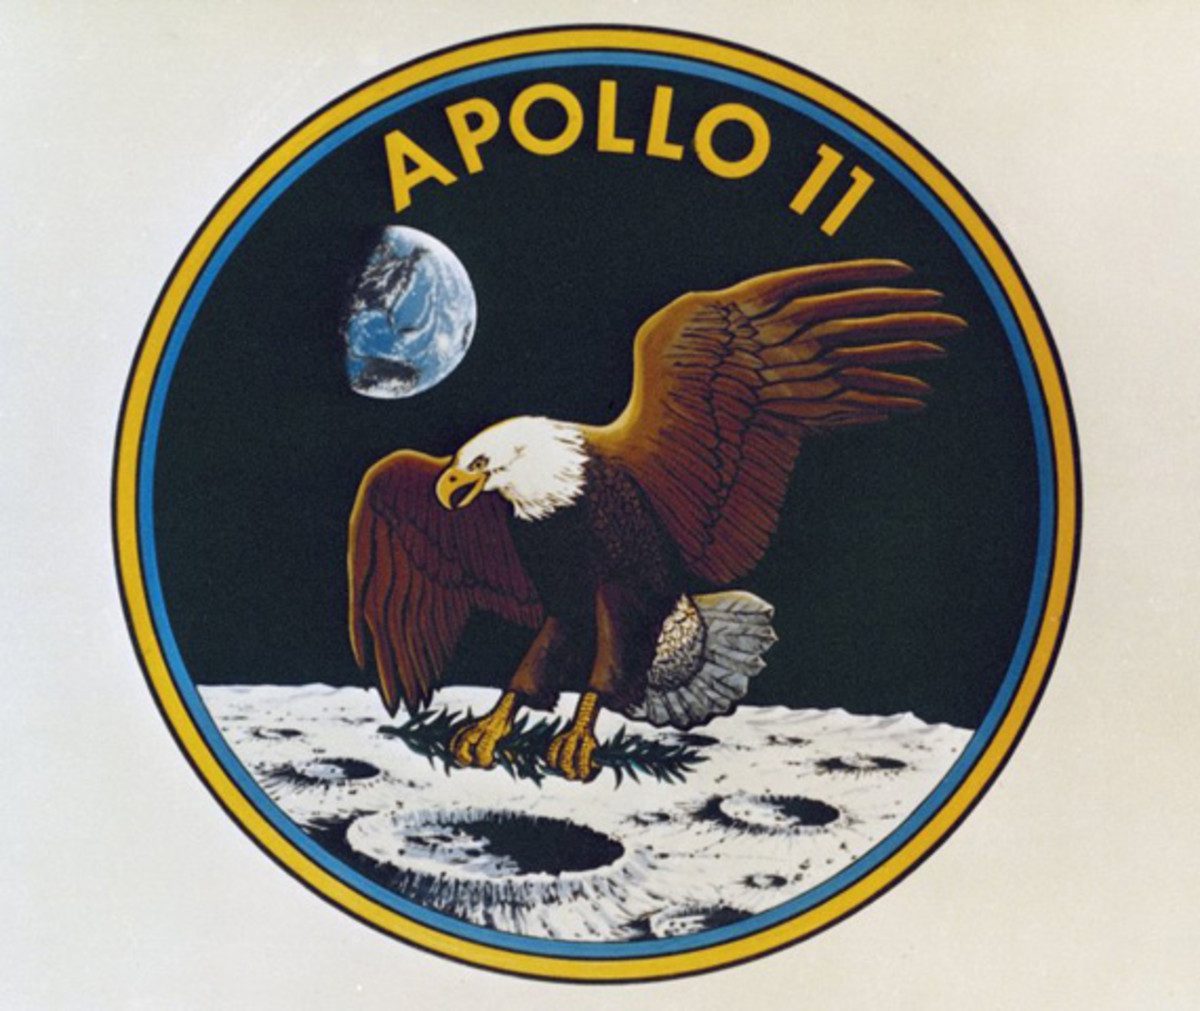 neil-armstrong-first-man-on-the-moon-apollo-11-04